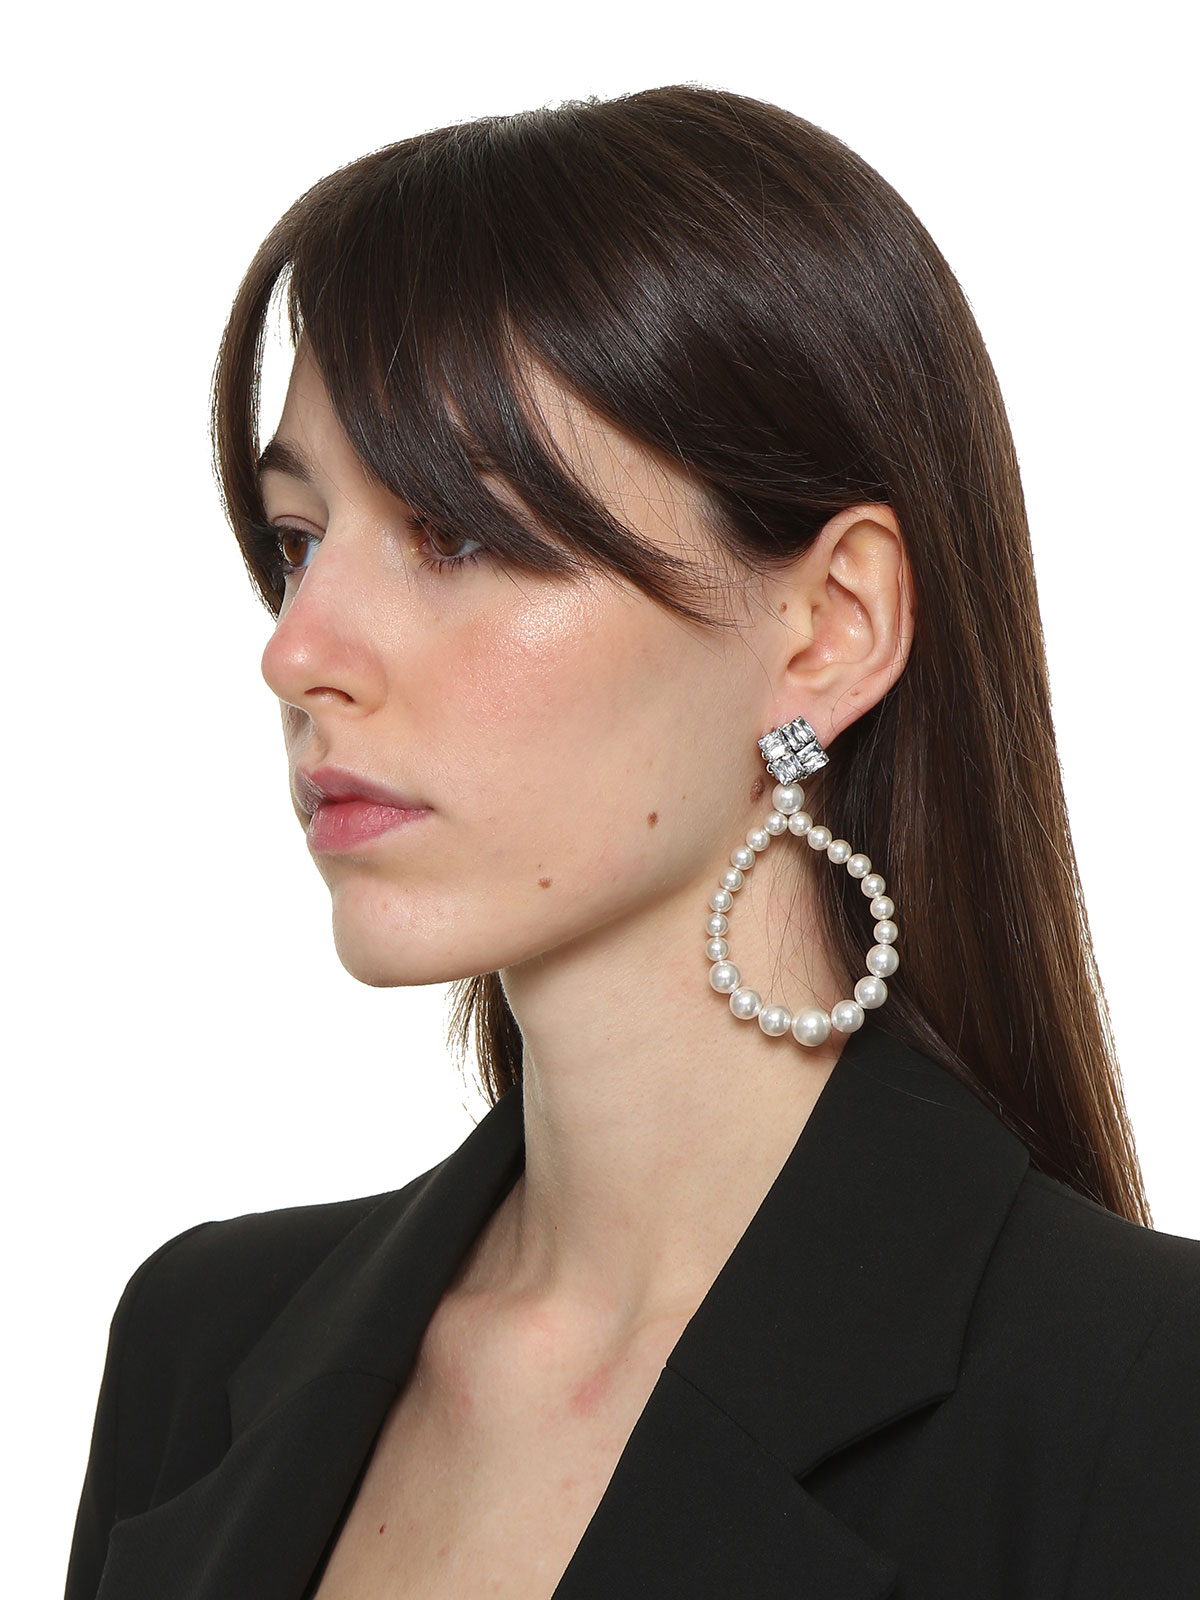 Square crystal earrings with pendent pearls